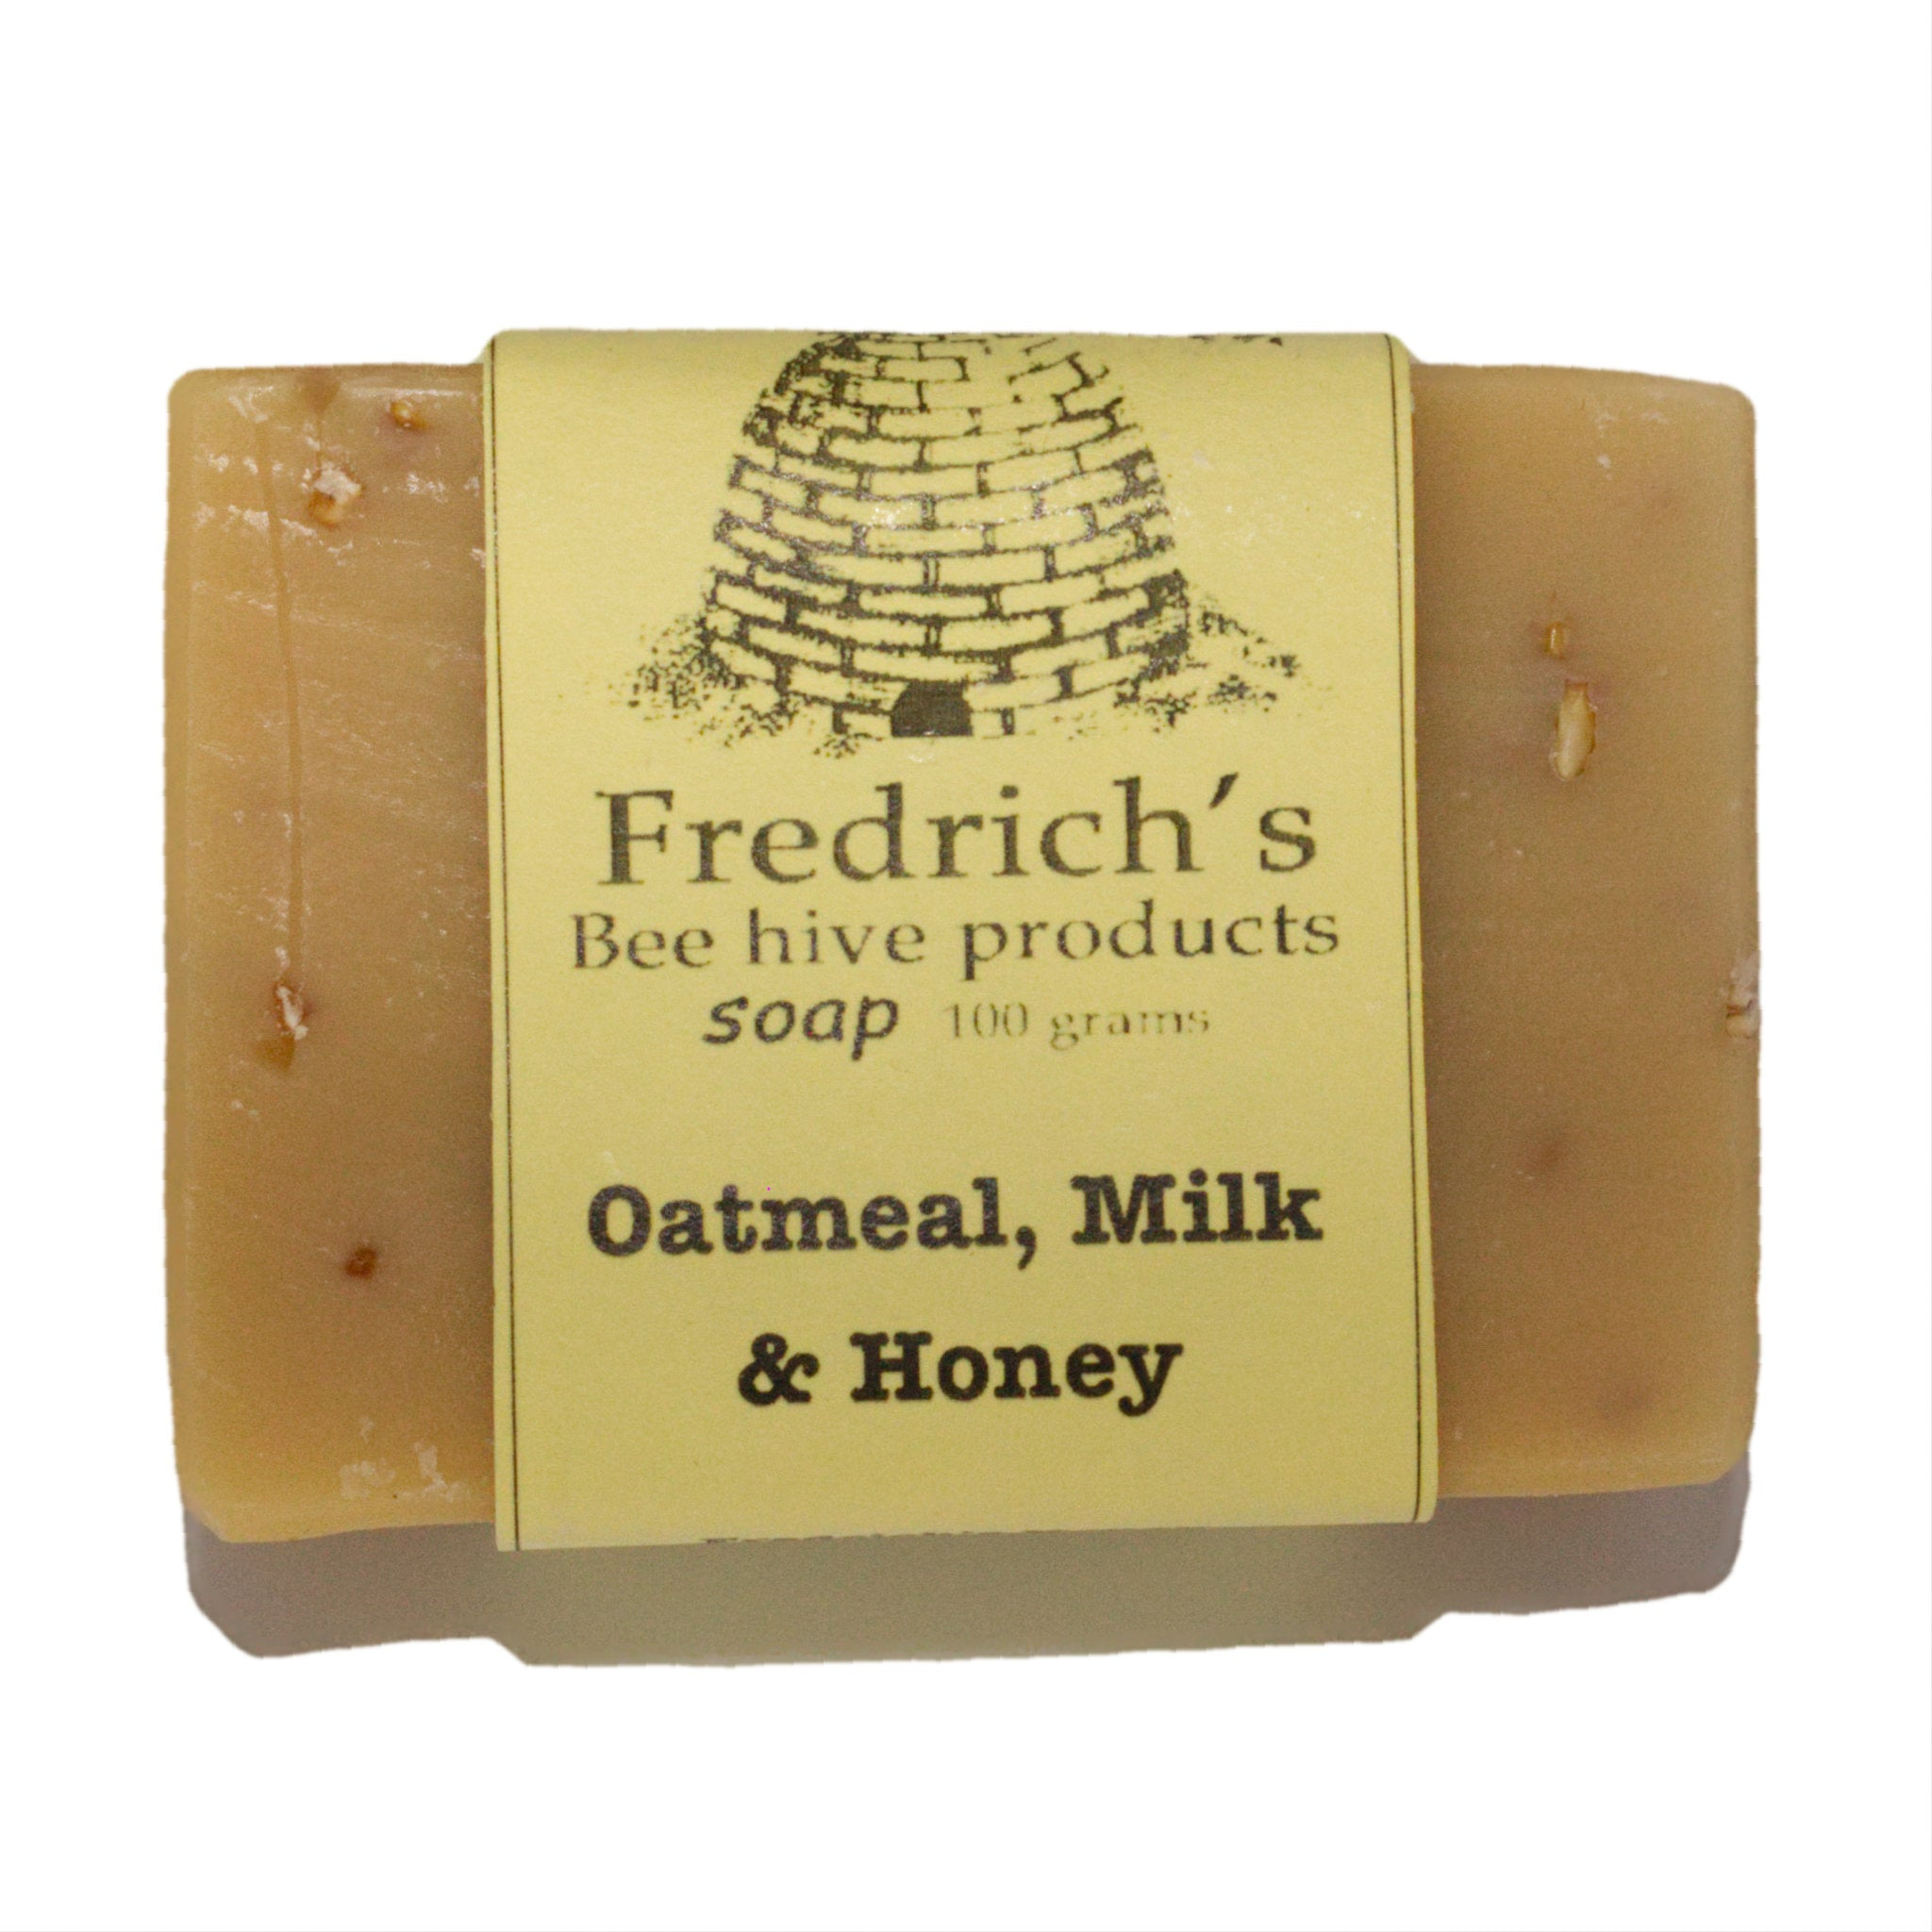 Oatmeal Milk & Honey Soap